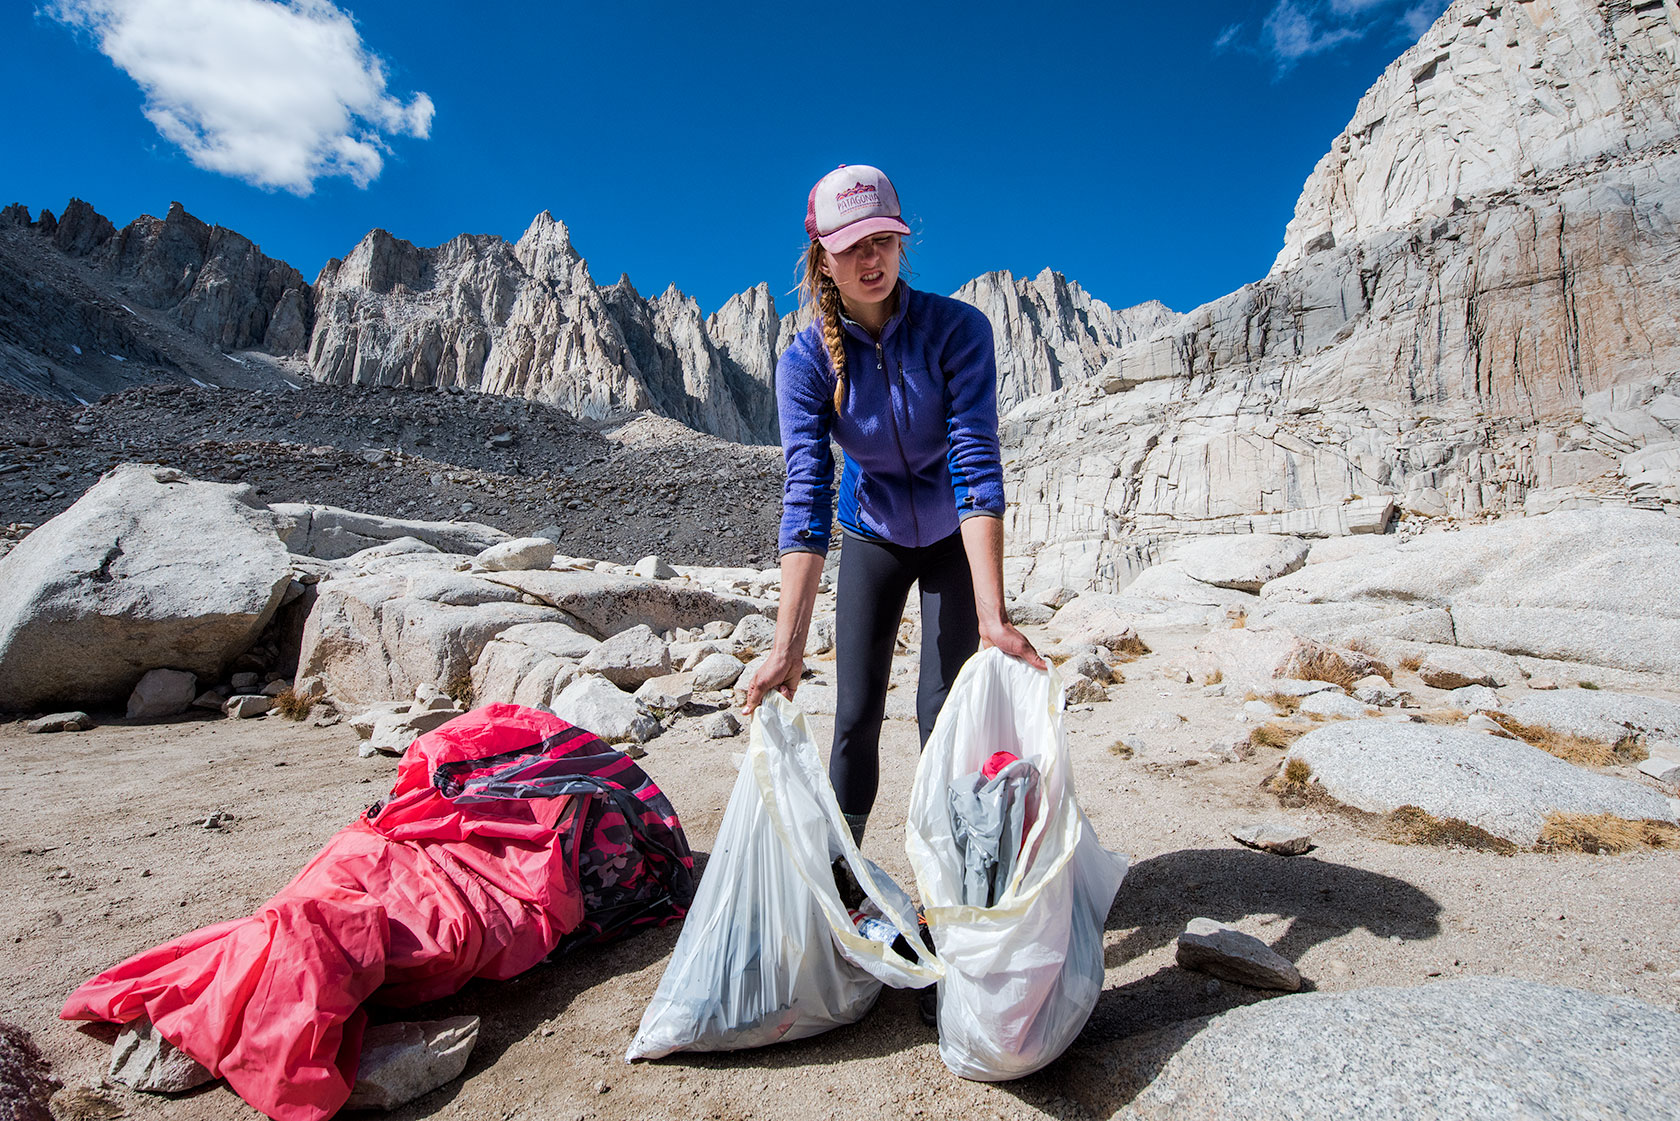 austin-trigg-patagonia-hiking-john-muir-trail-wilderness-california-adventure-outside-camp-sierra-nevada-lifestyle-mt-whitney-trash-clean-up.jpg